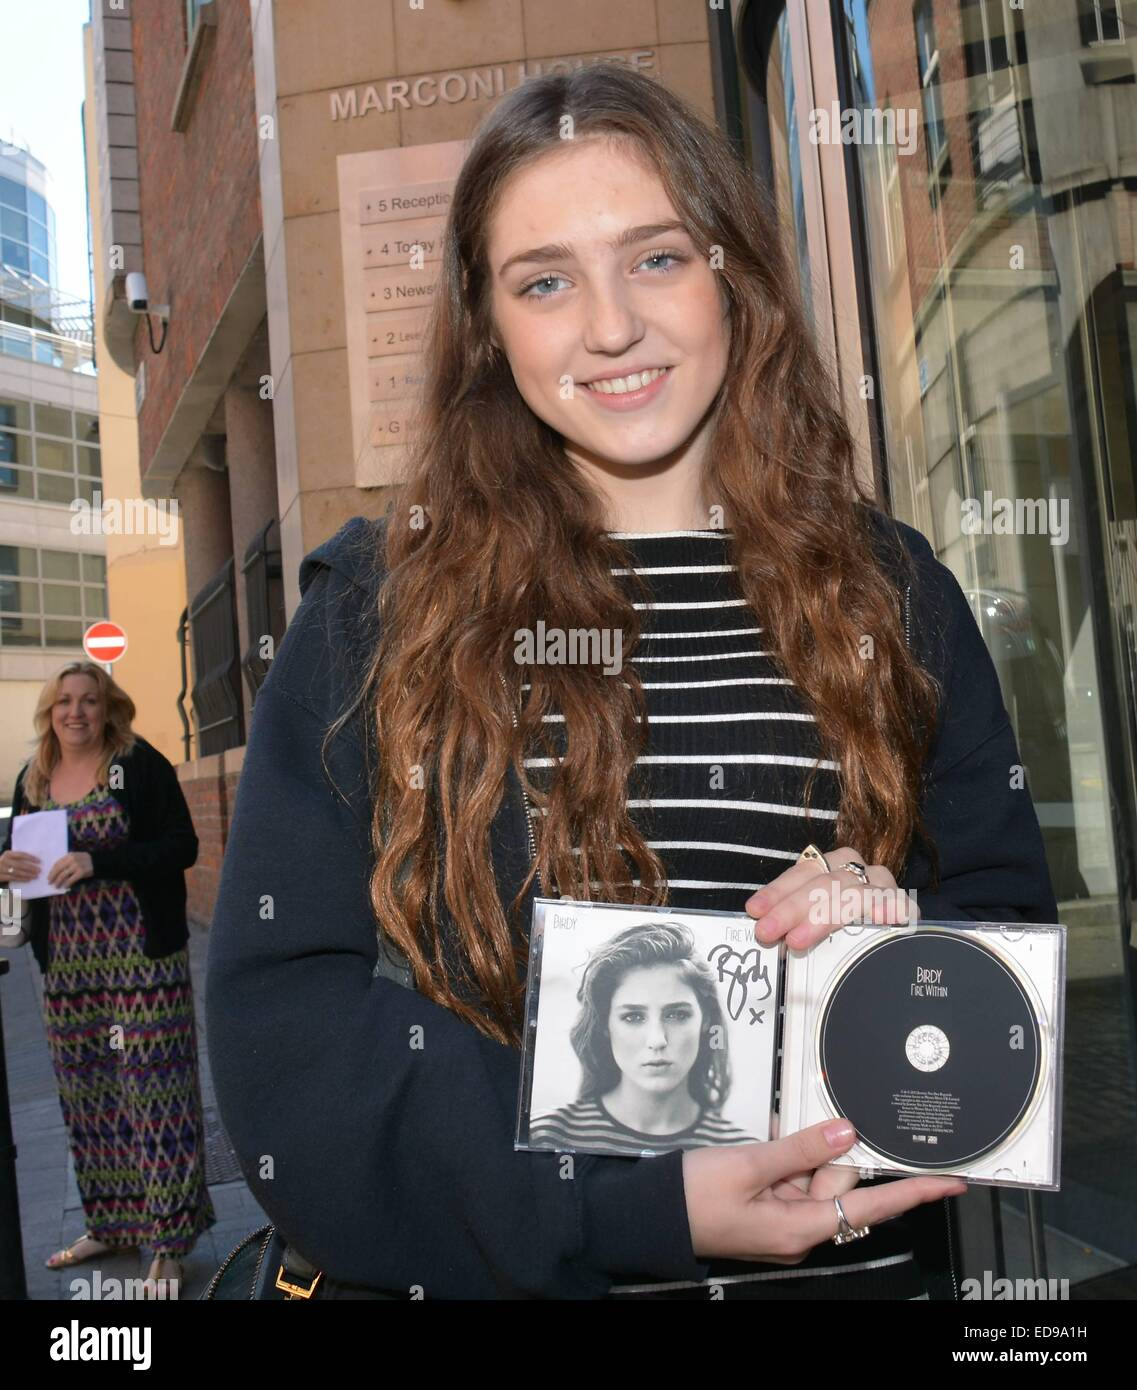 Guests at Today FM included singer Birdy with her 'Fire